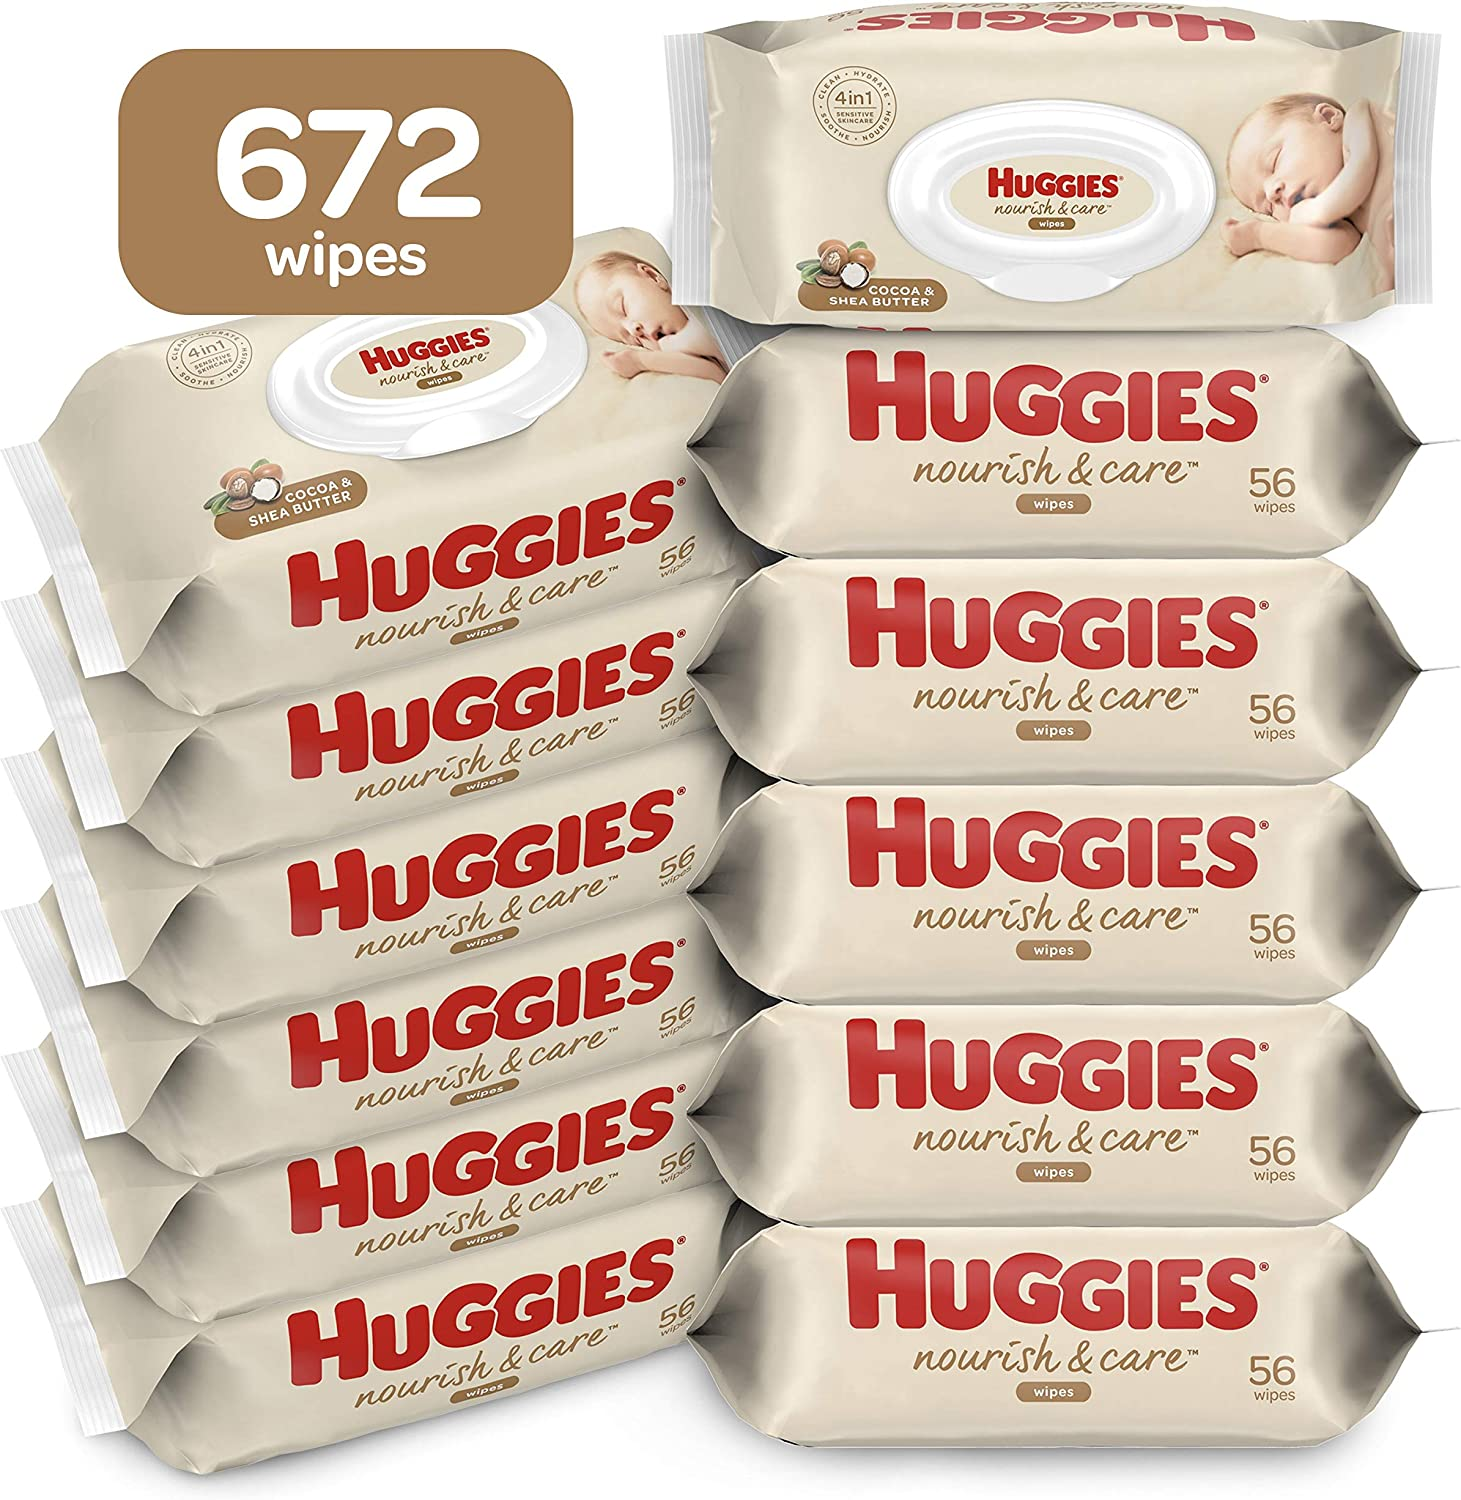 Baby Wipes Scented Huggies Max 57% OFF Care Nourish Shipping included 1 Diaper